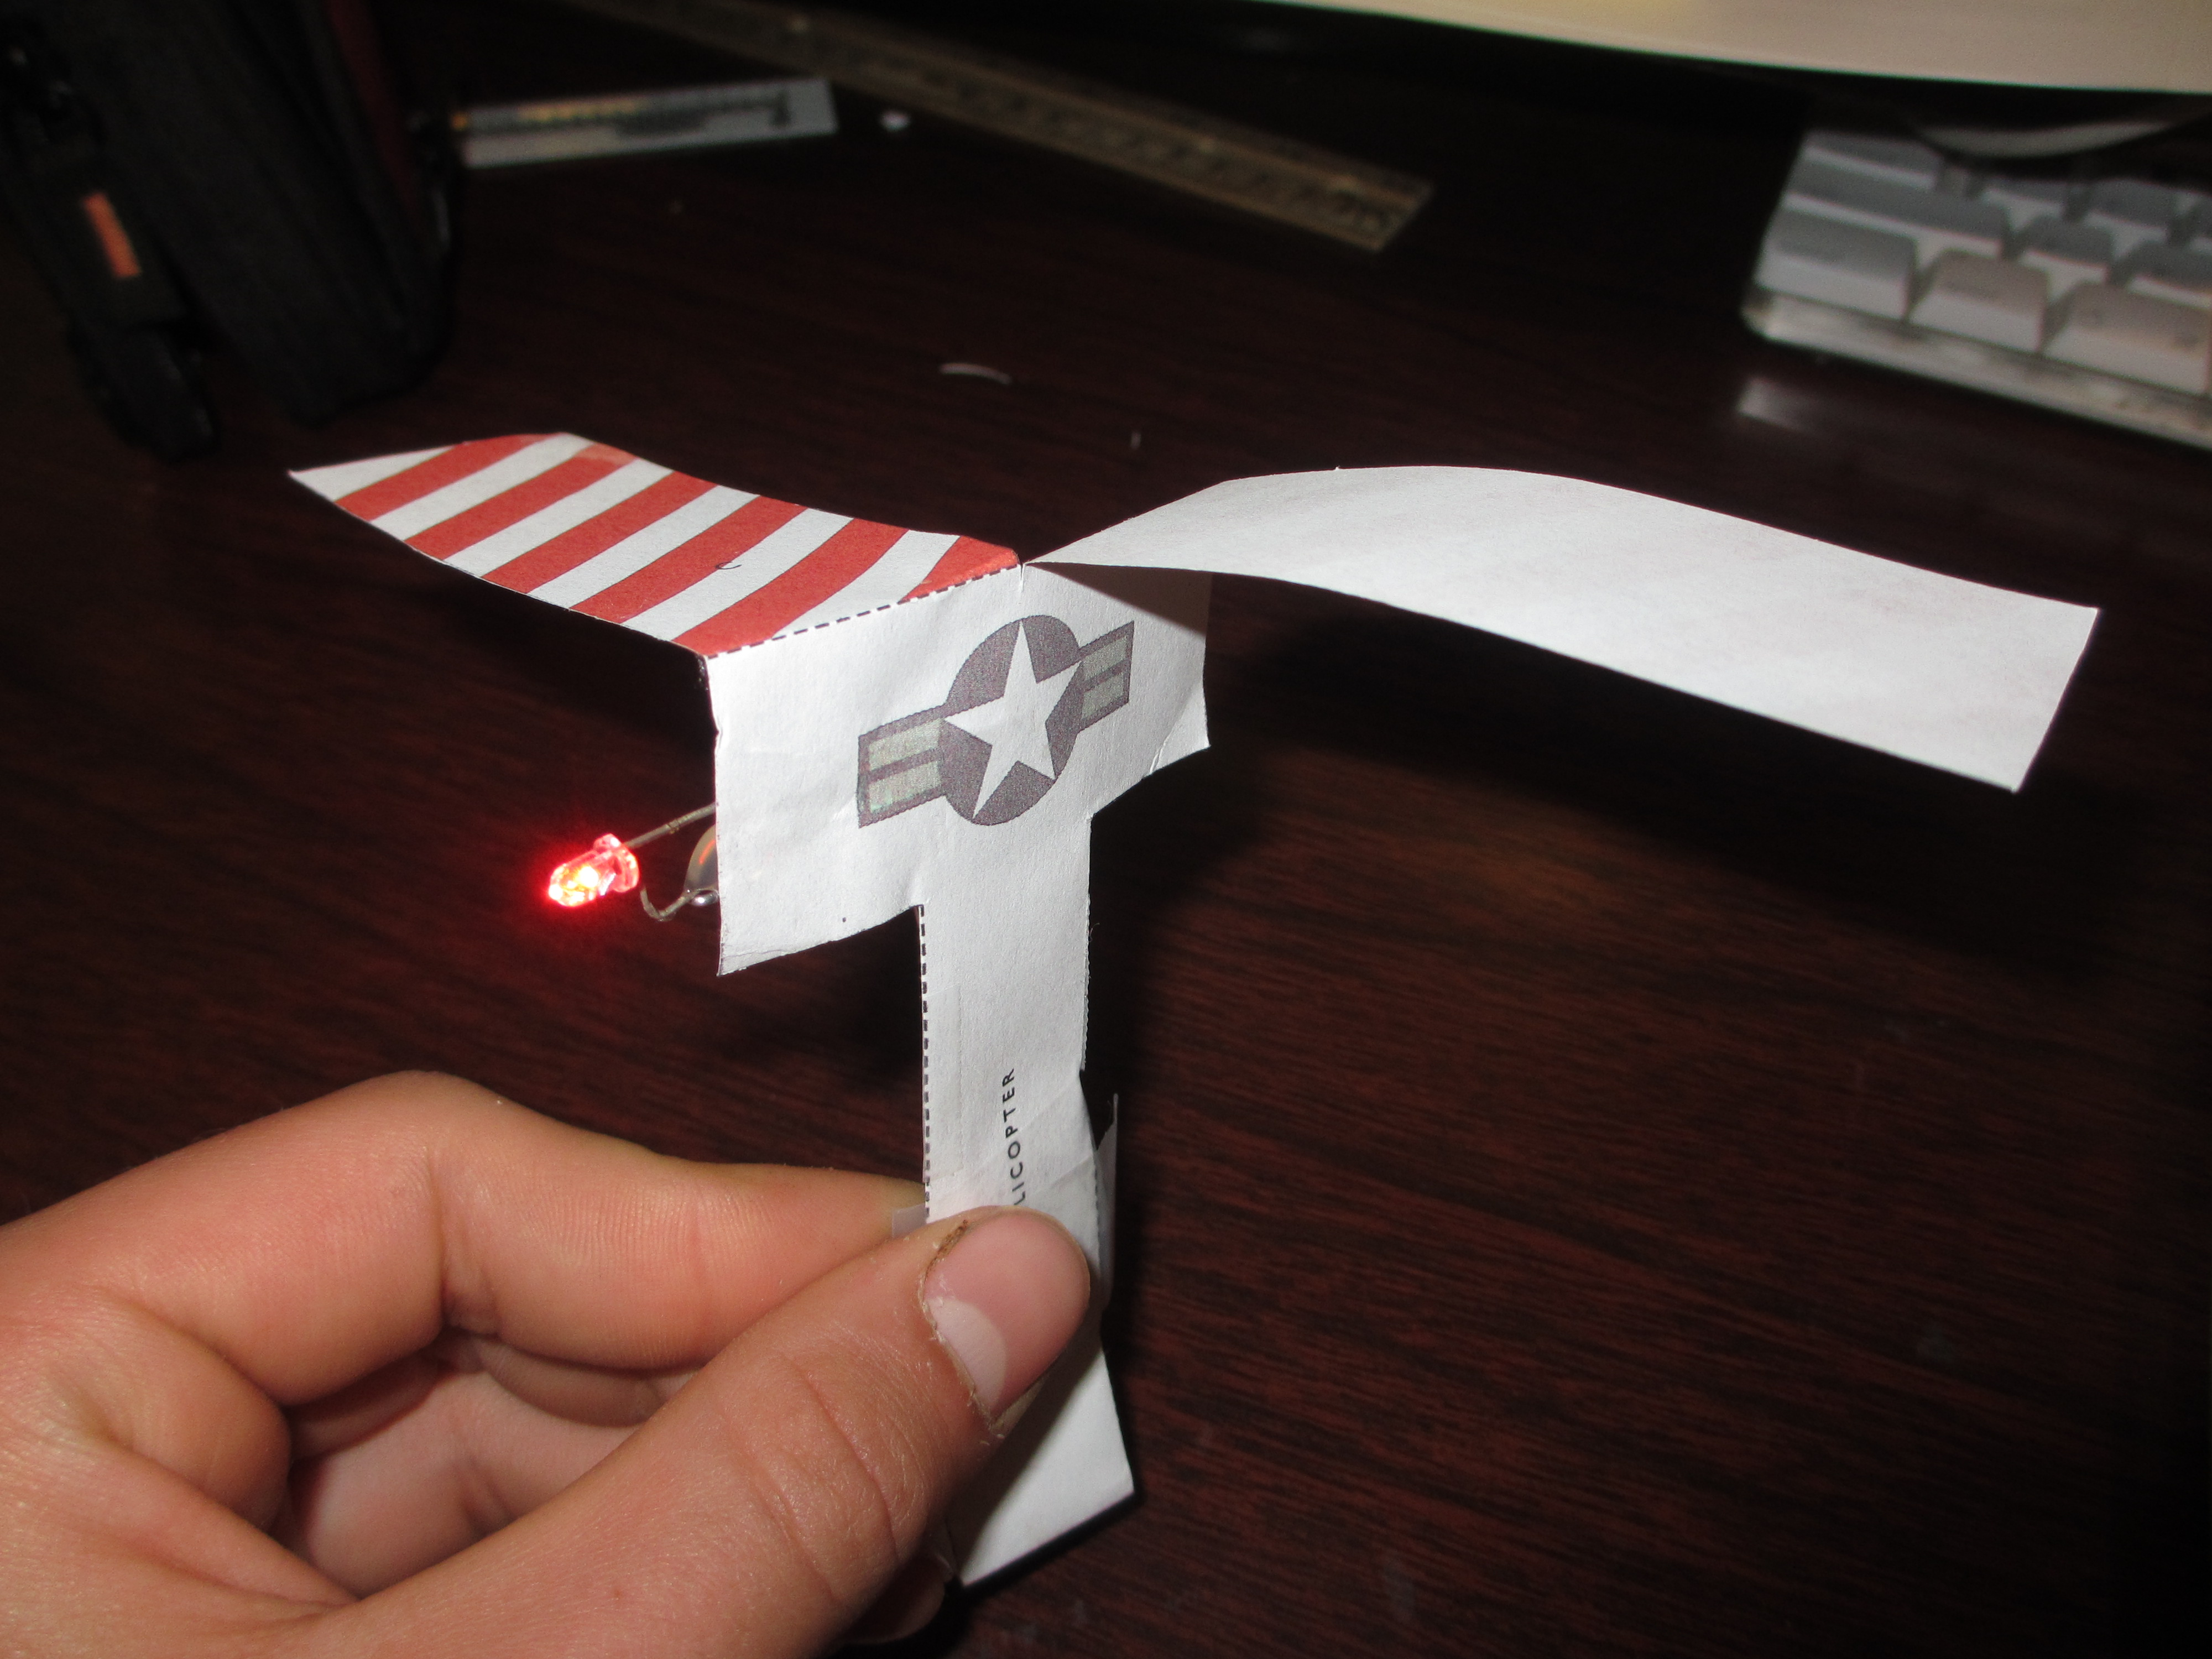 LED helicopter